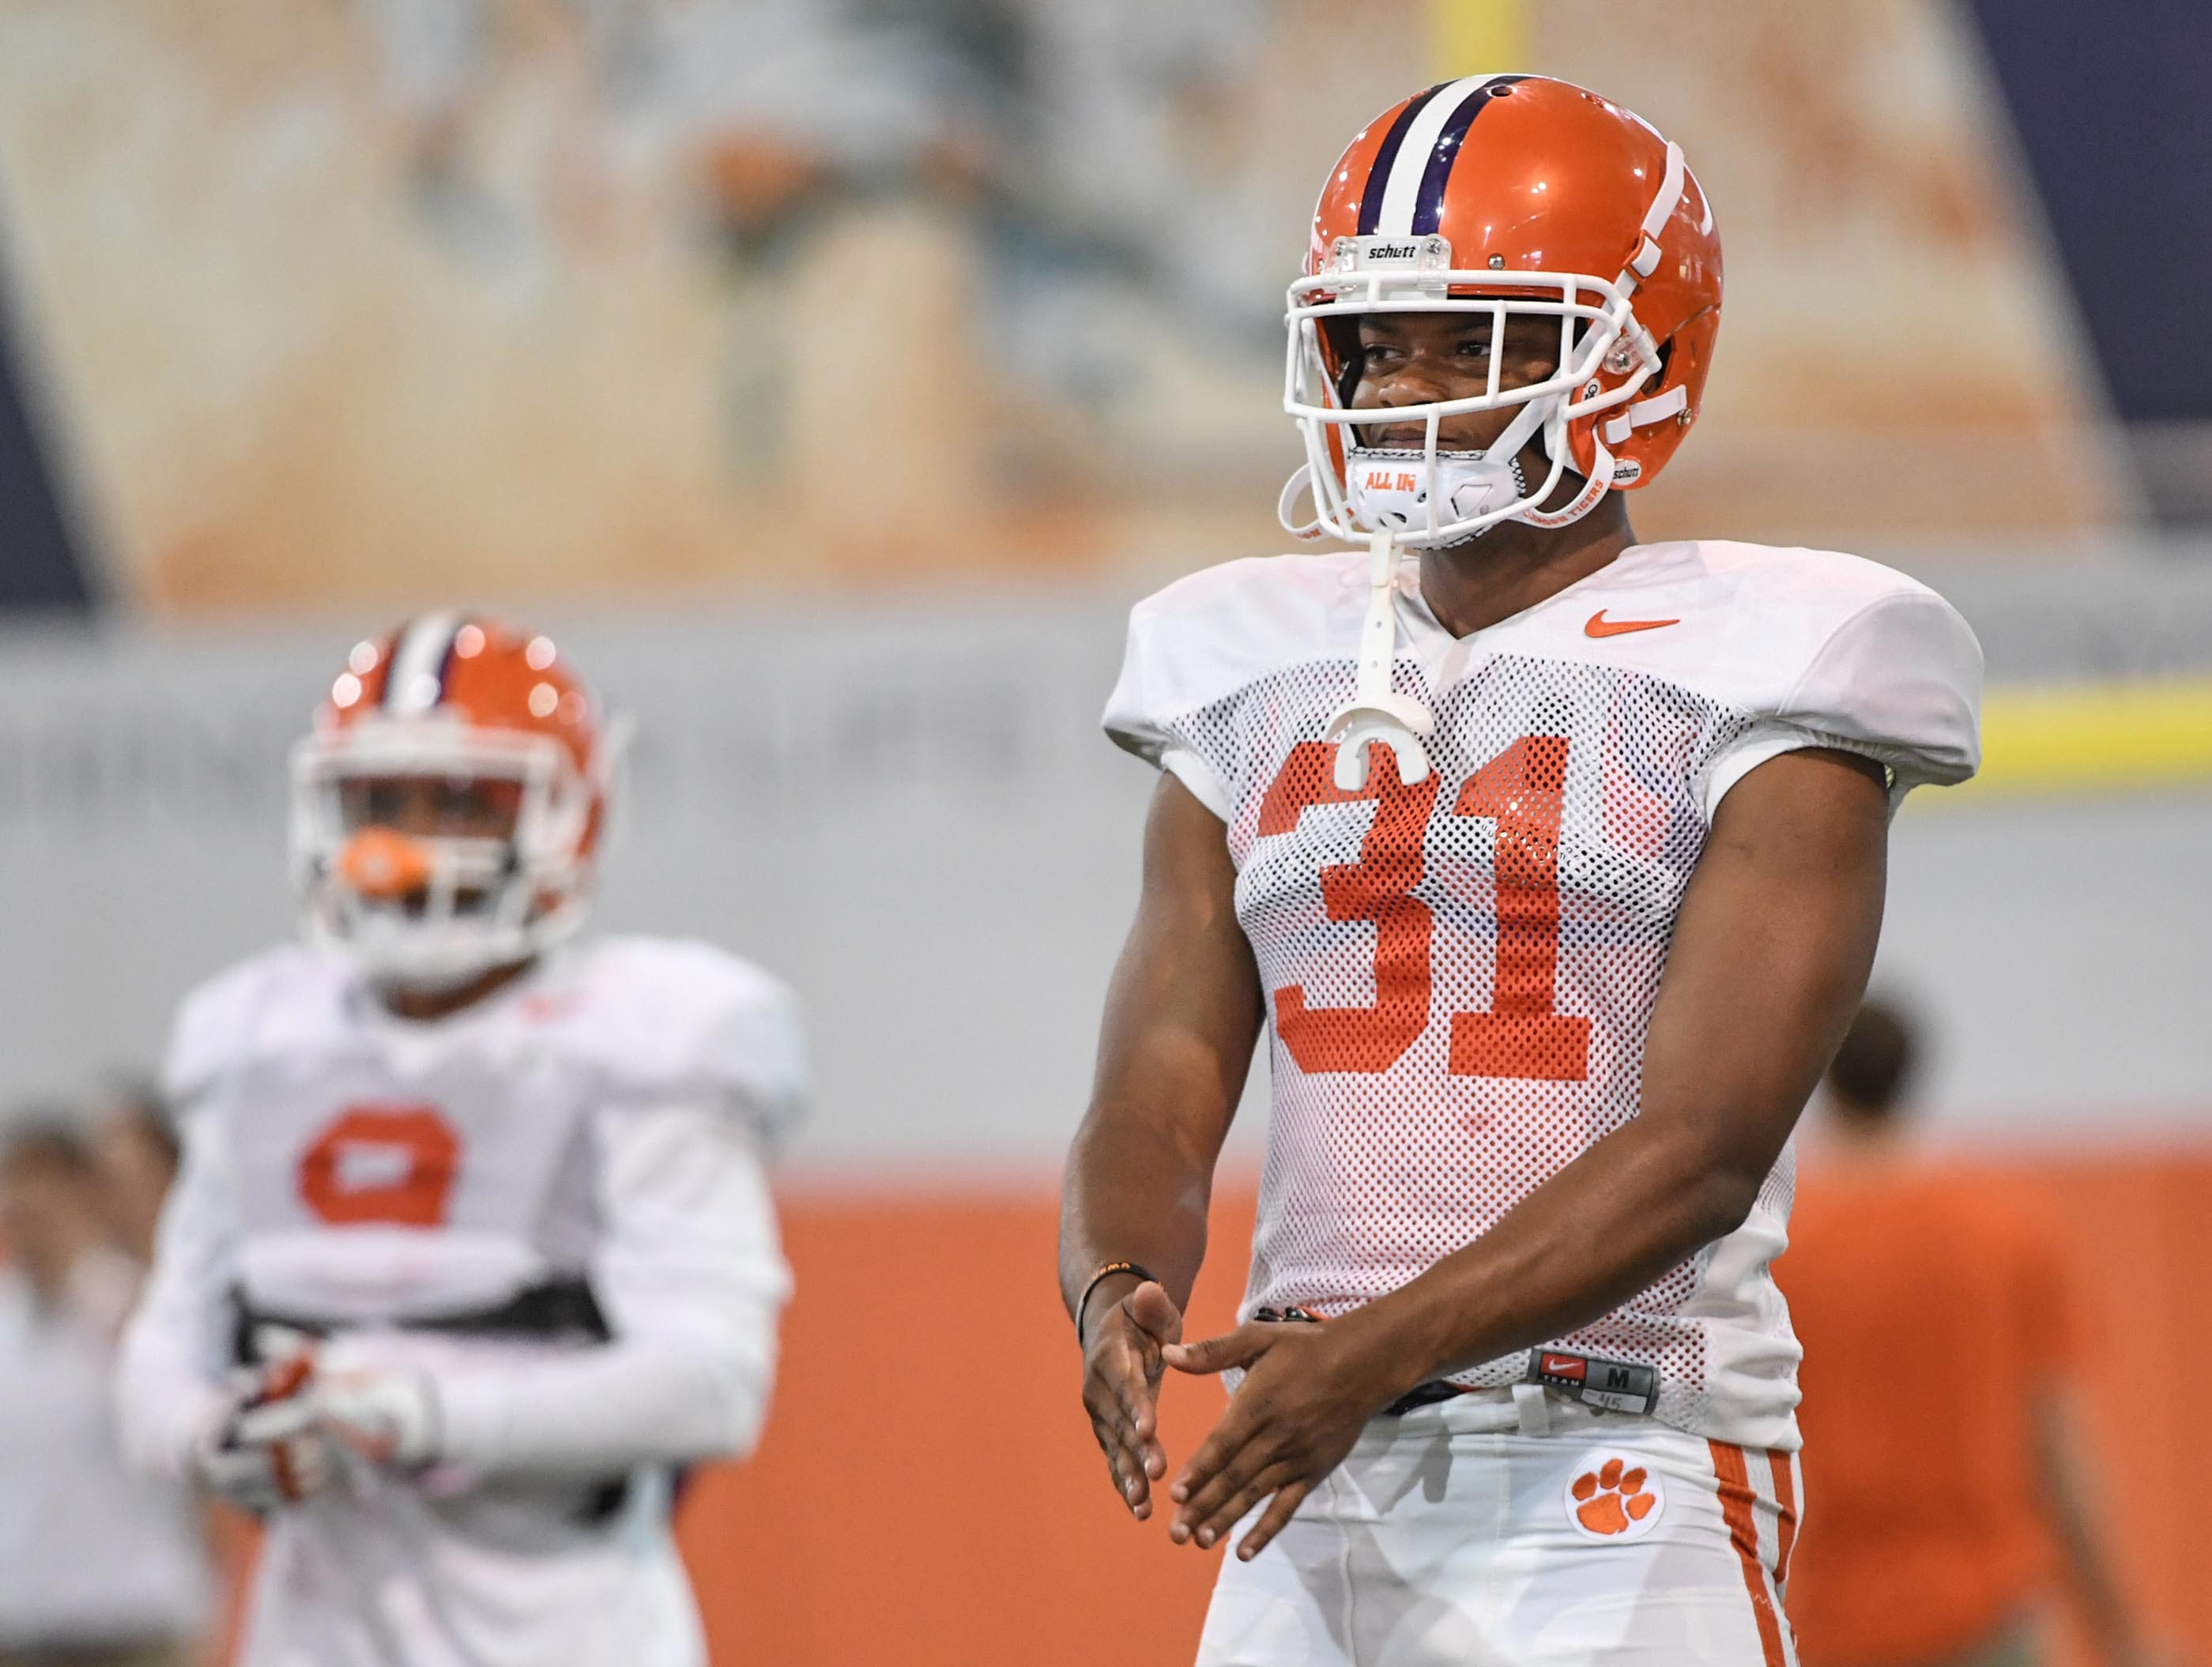 Clemson defensive back Mario Goodrich (31) during fall practice in Clemson on Wednesday.